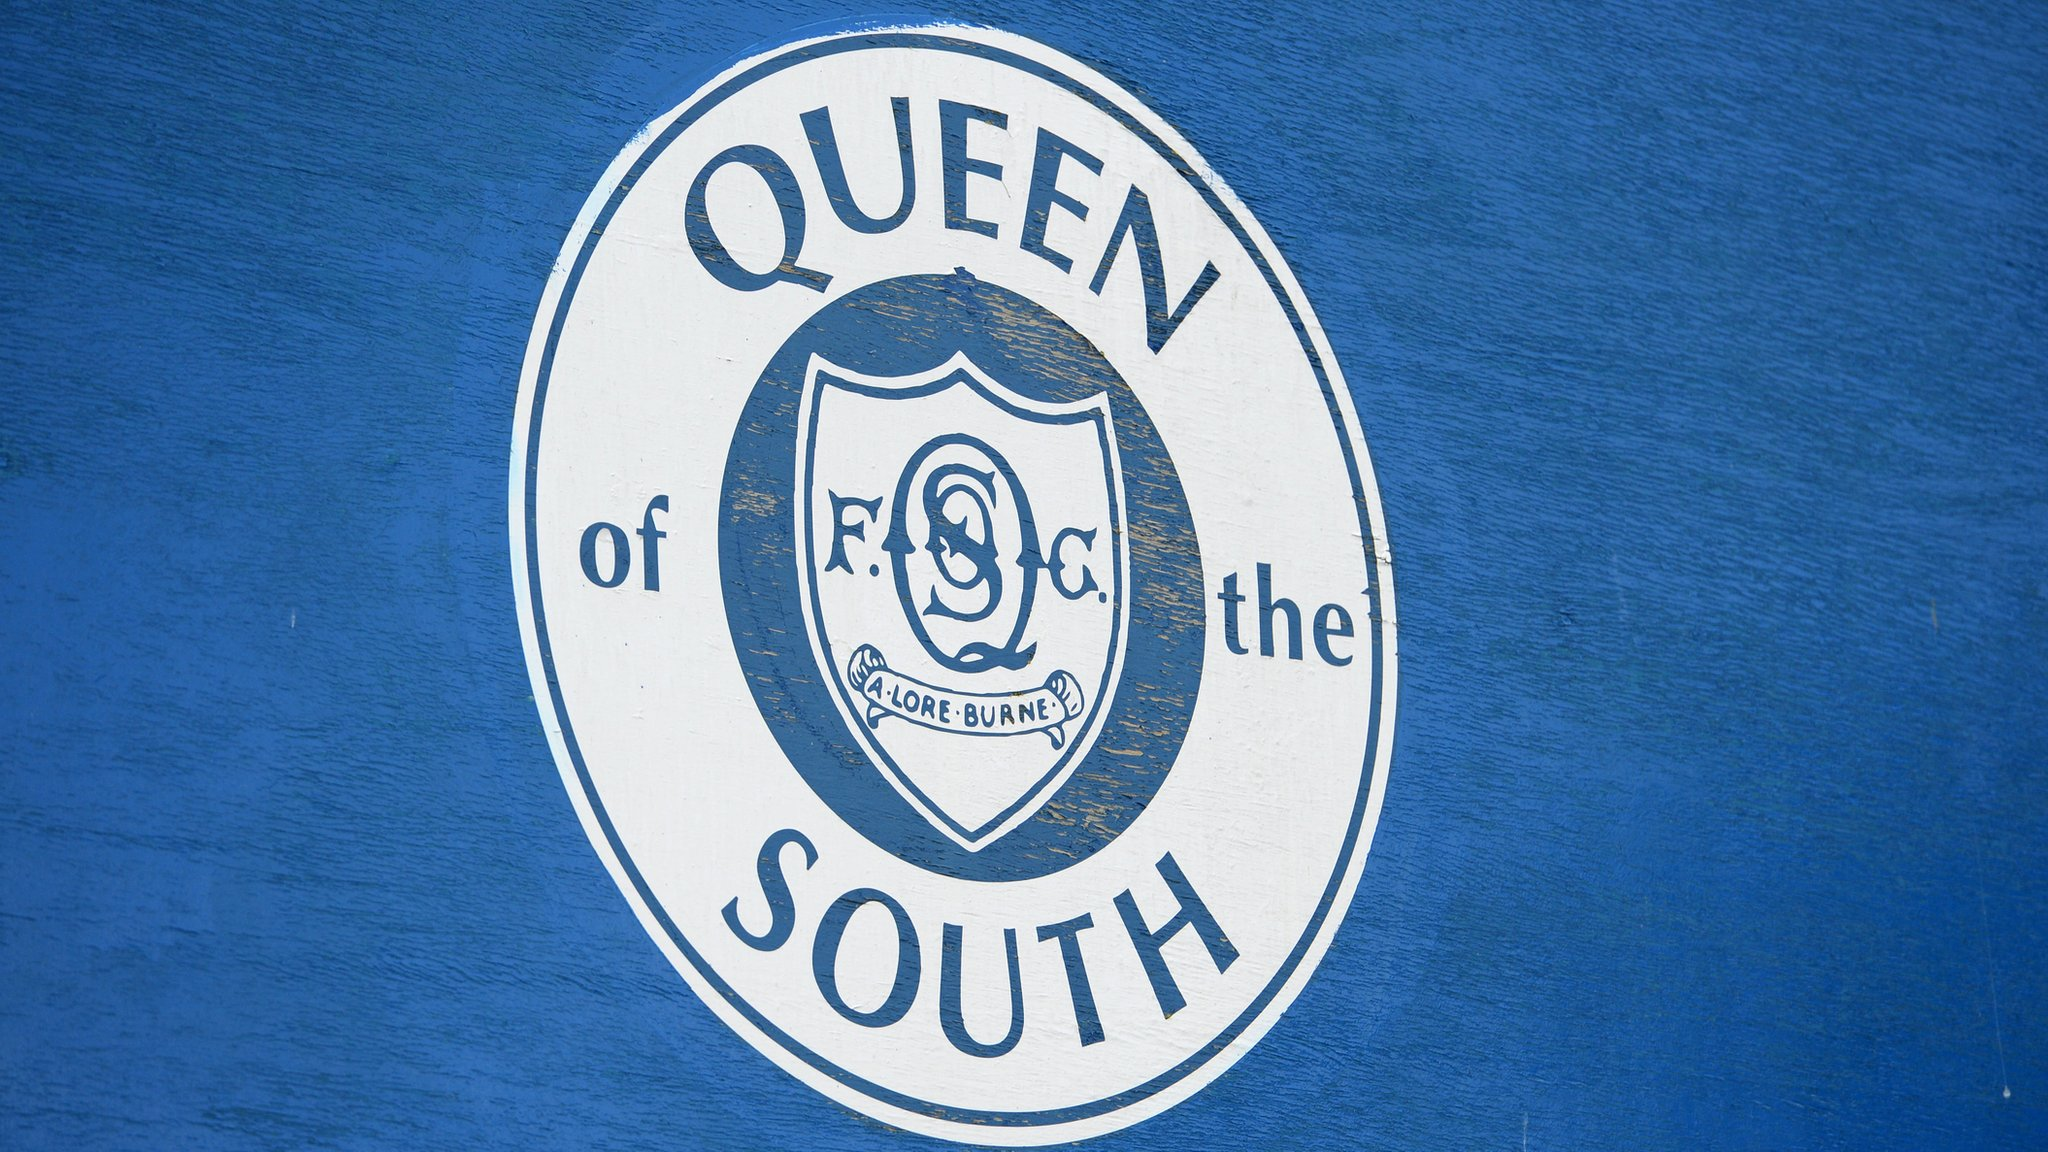 Queen of the South legend Ball dies at 75